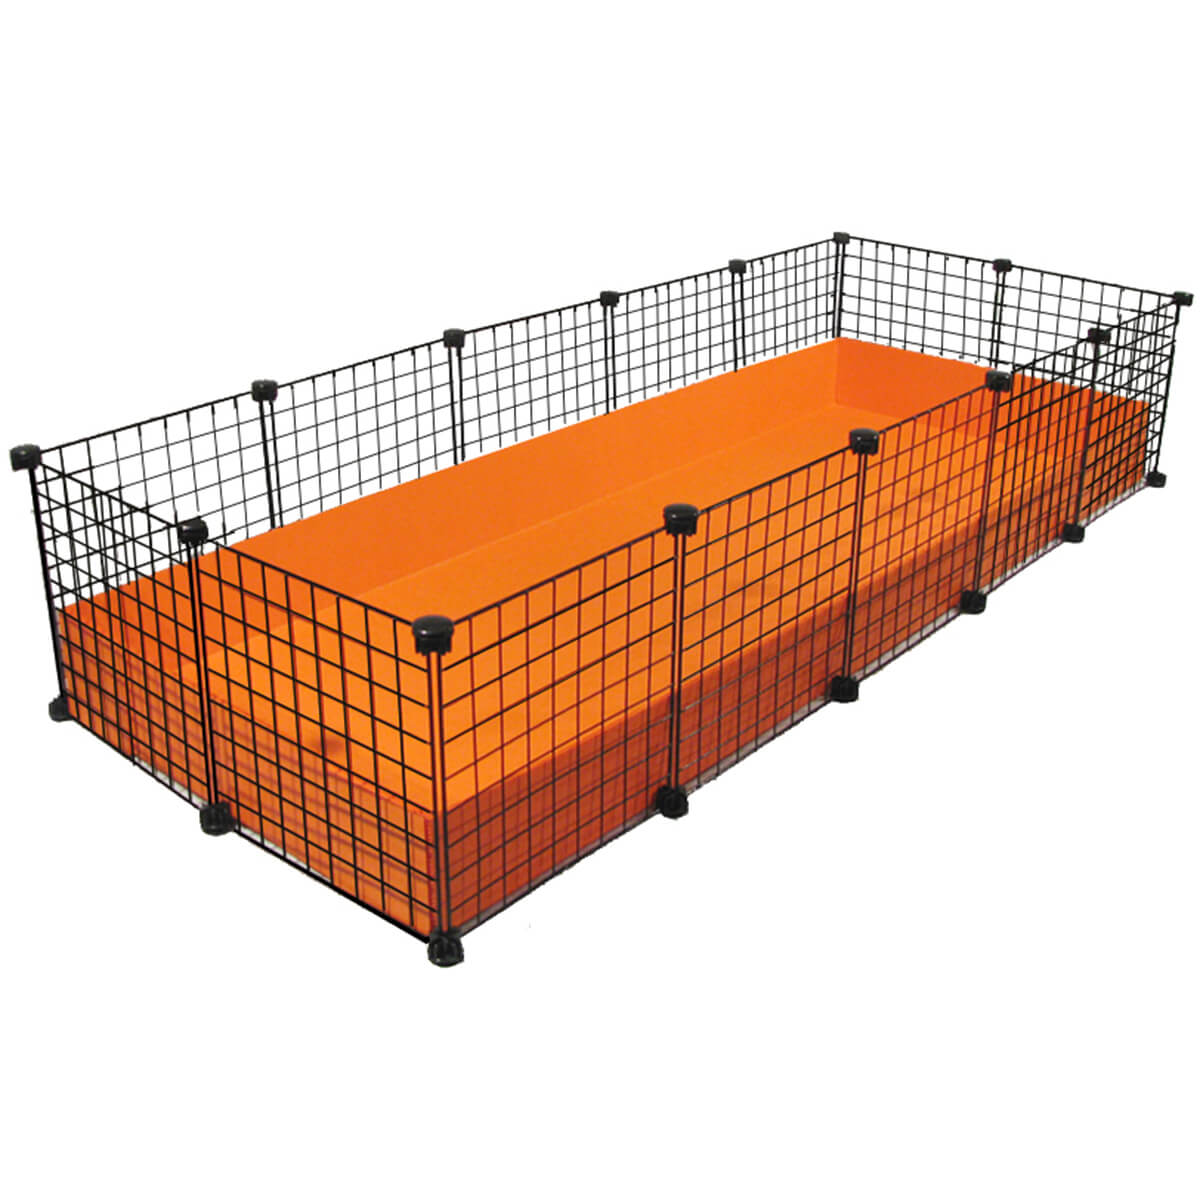 XL (2x5 Grid) C&C Guinea Pig Cage by Cagetopia - orange